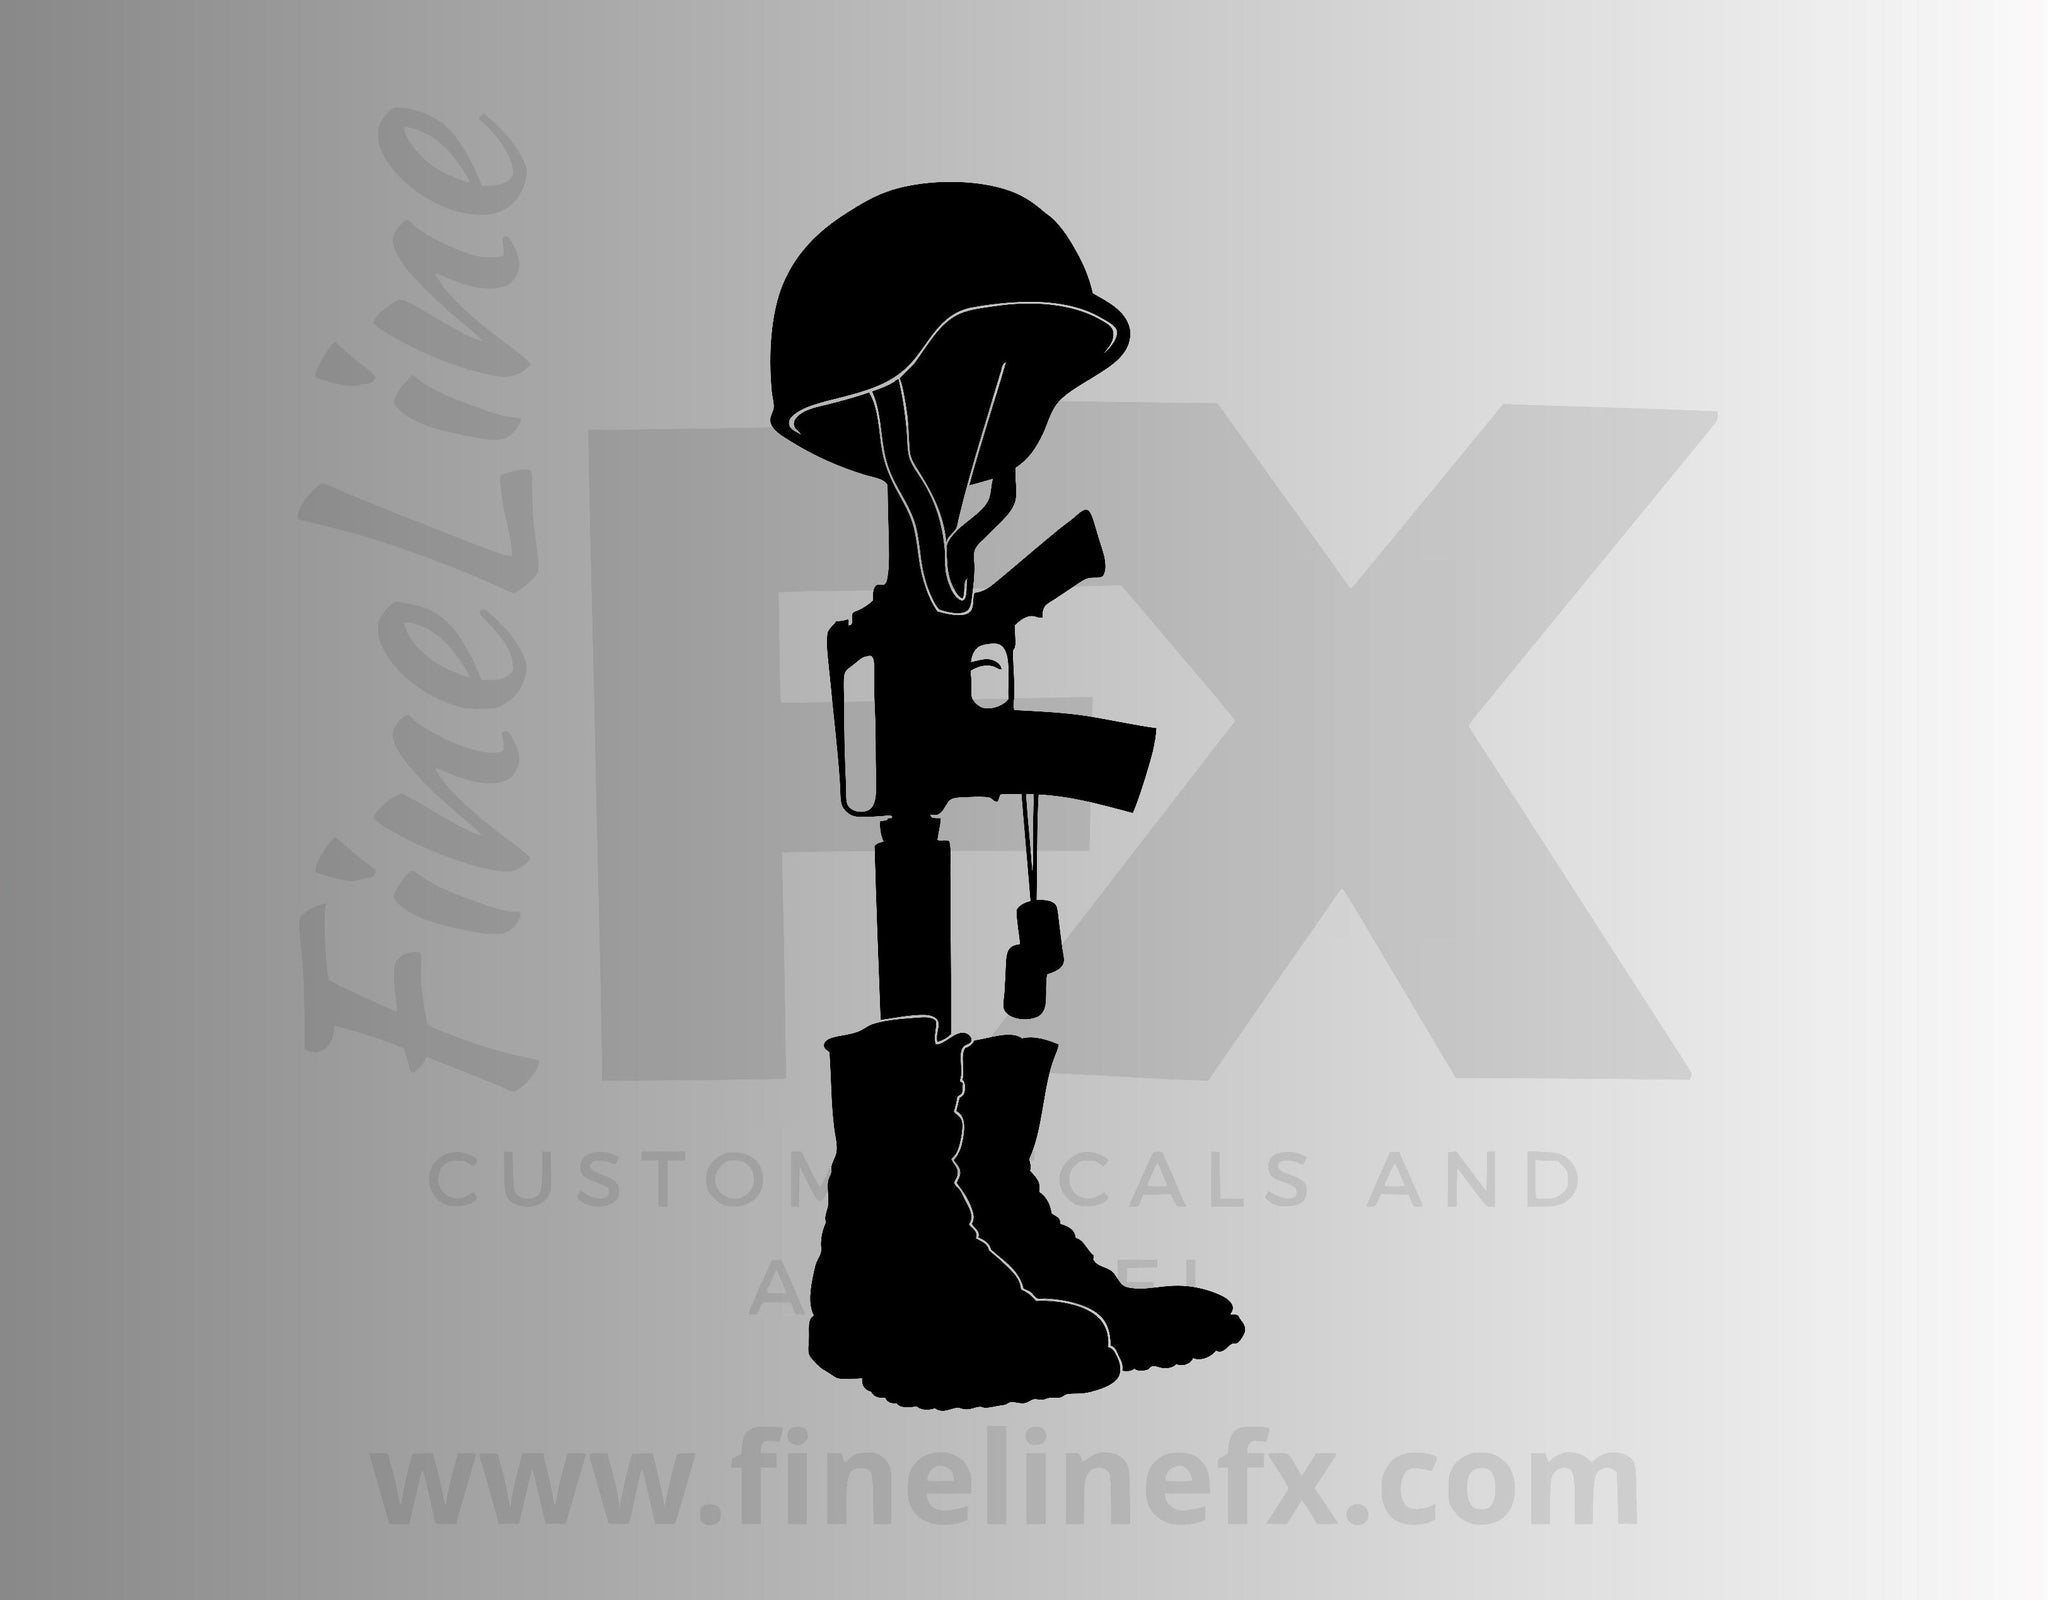 Battlefield Fallen Soldier Memorial Cross Vinyl Decal Sticker